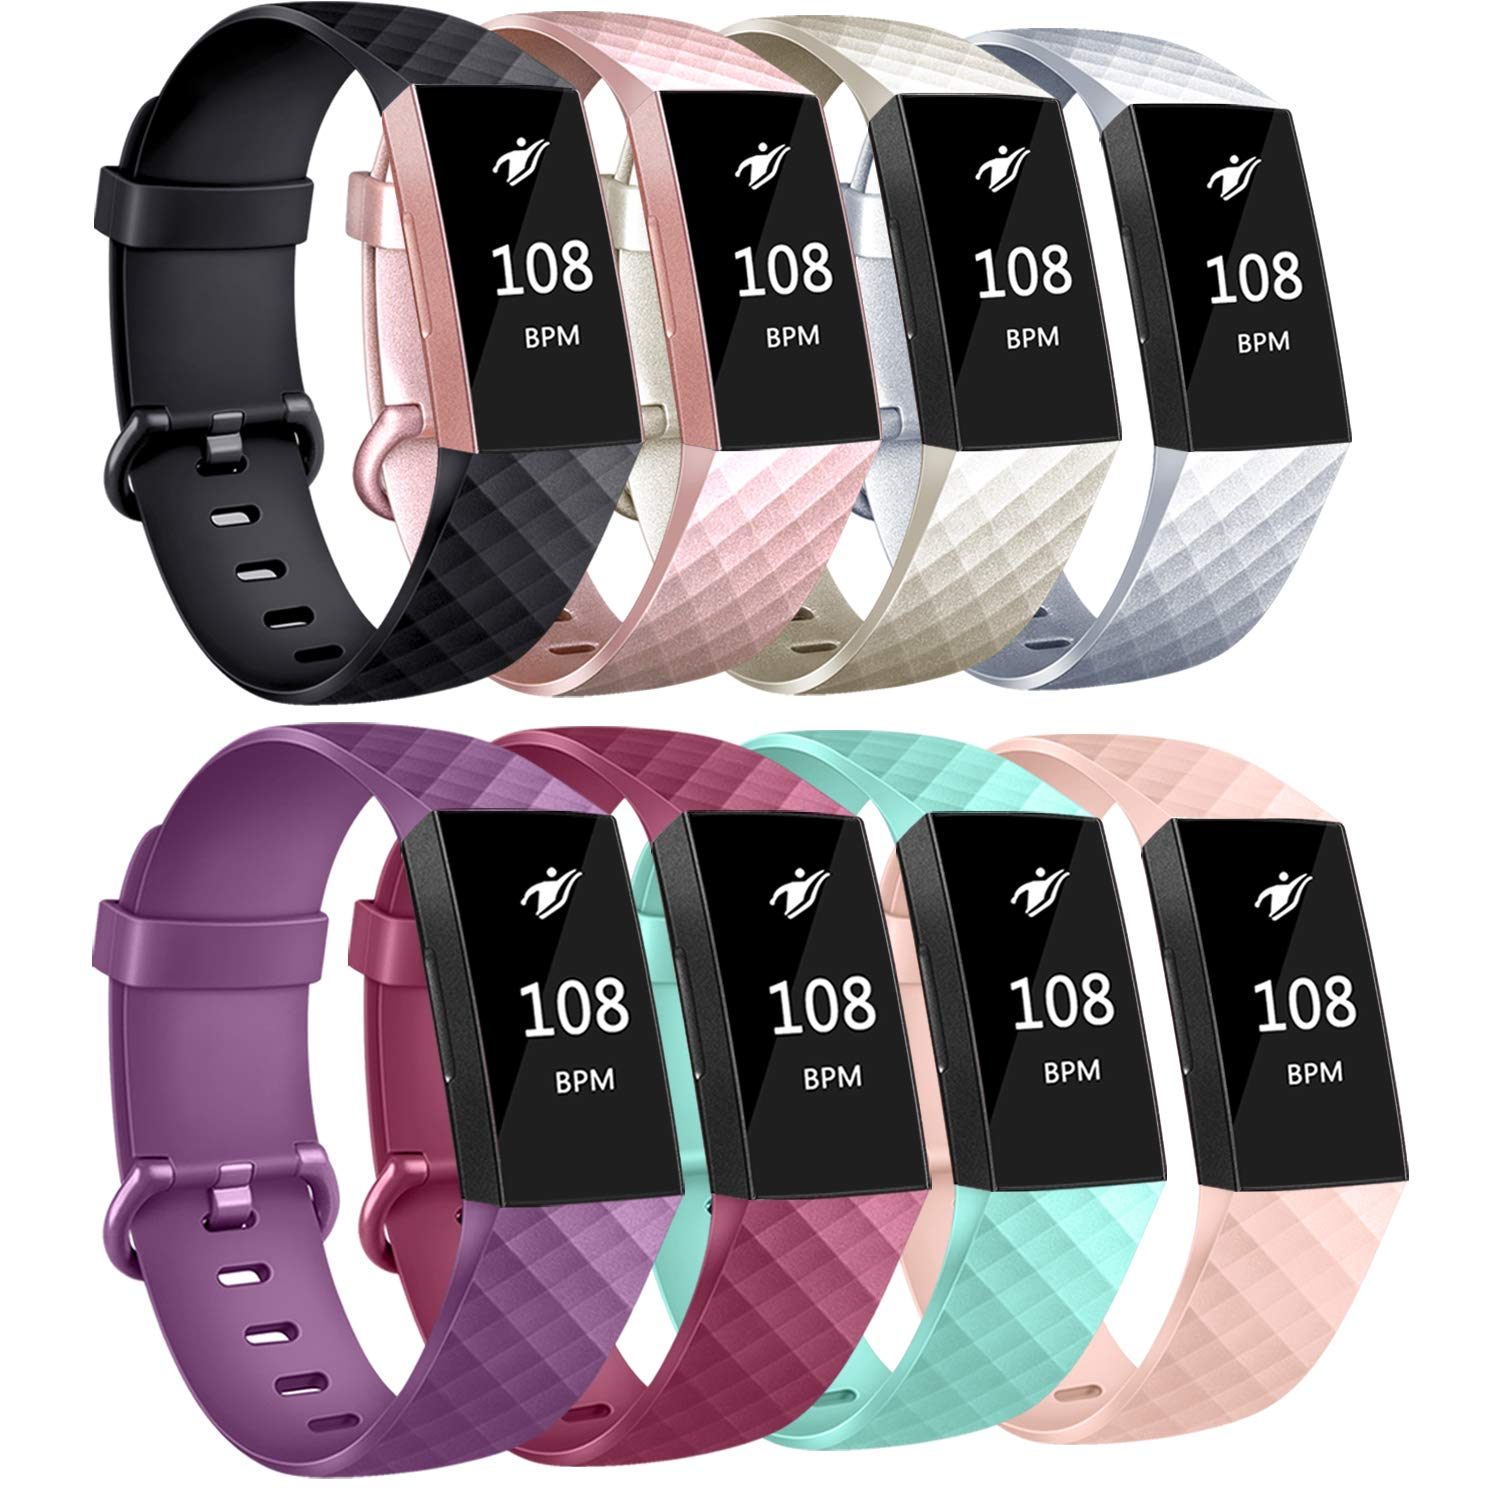 AK Bands Compatible with Fitbit Charge 3 Bands, Sports Replacement Wristbands for Fitbit Charge 3 Fitness Tracker Women Men